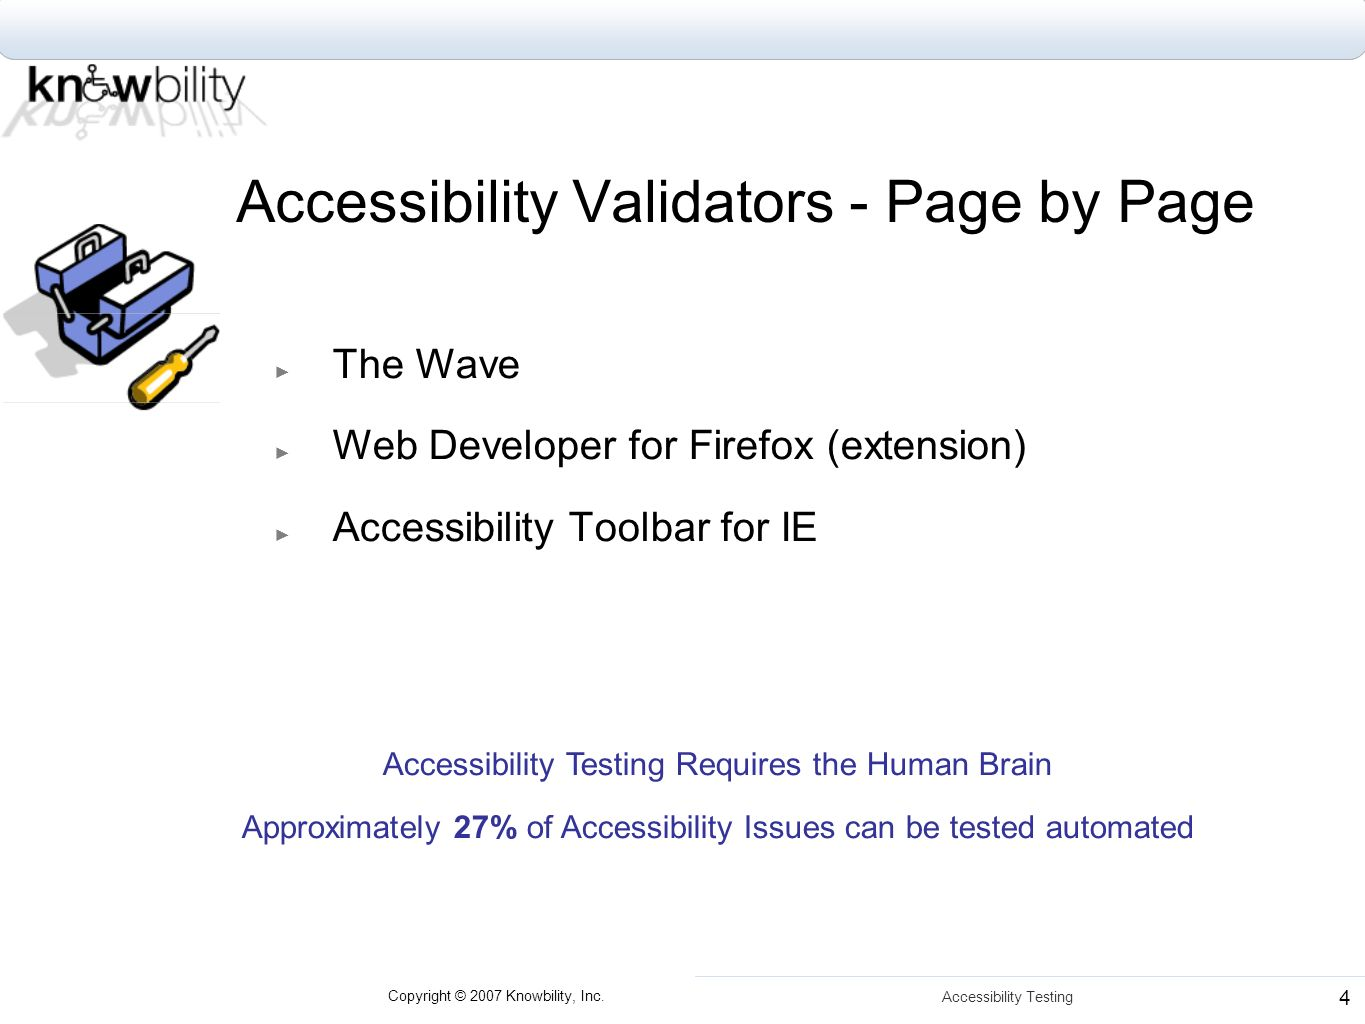 Copyright © 2007 Knowbility, Inc. Accessibility Testing 4 Accessibility Validators - Page by Page The Wave Web Developer for Firefox (extension) Acces